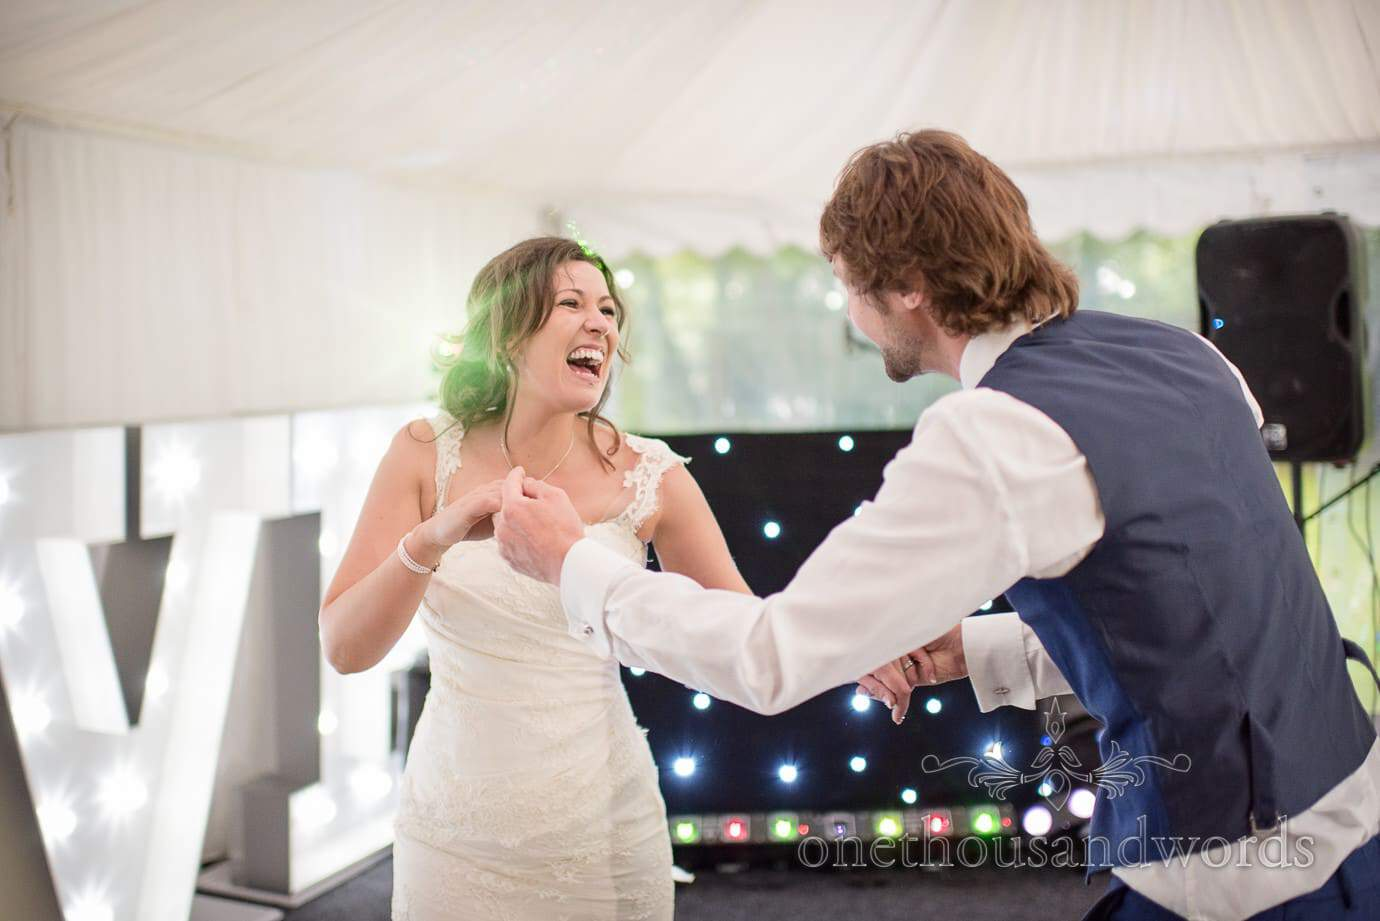 Laughing bride dances with wedding guest in marquee at The Old Vicarage Wedding